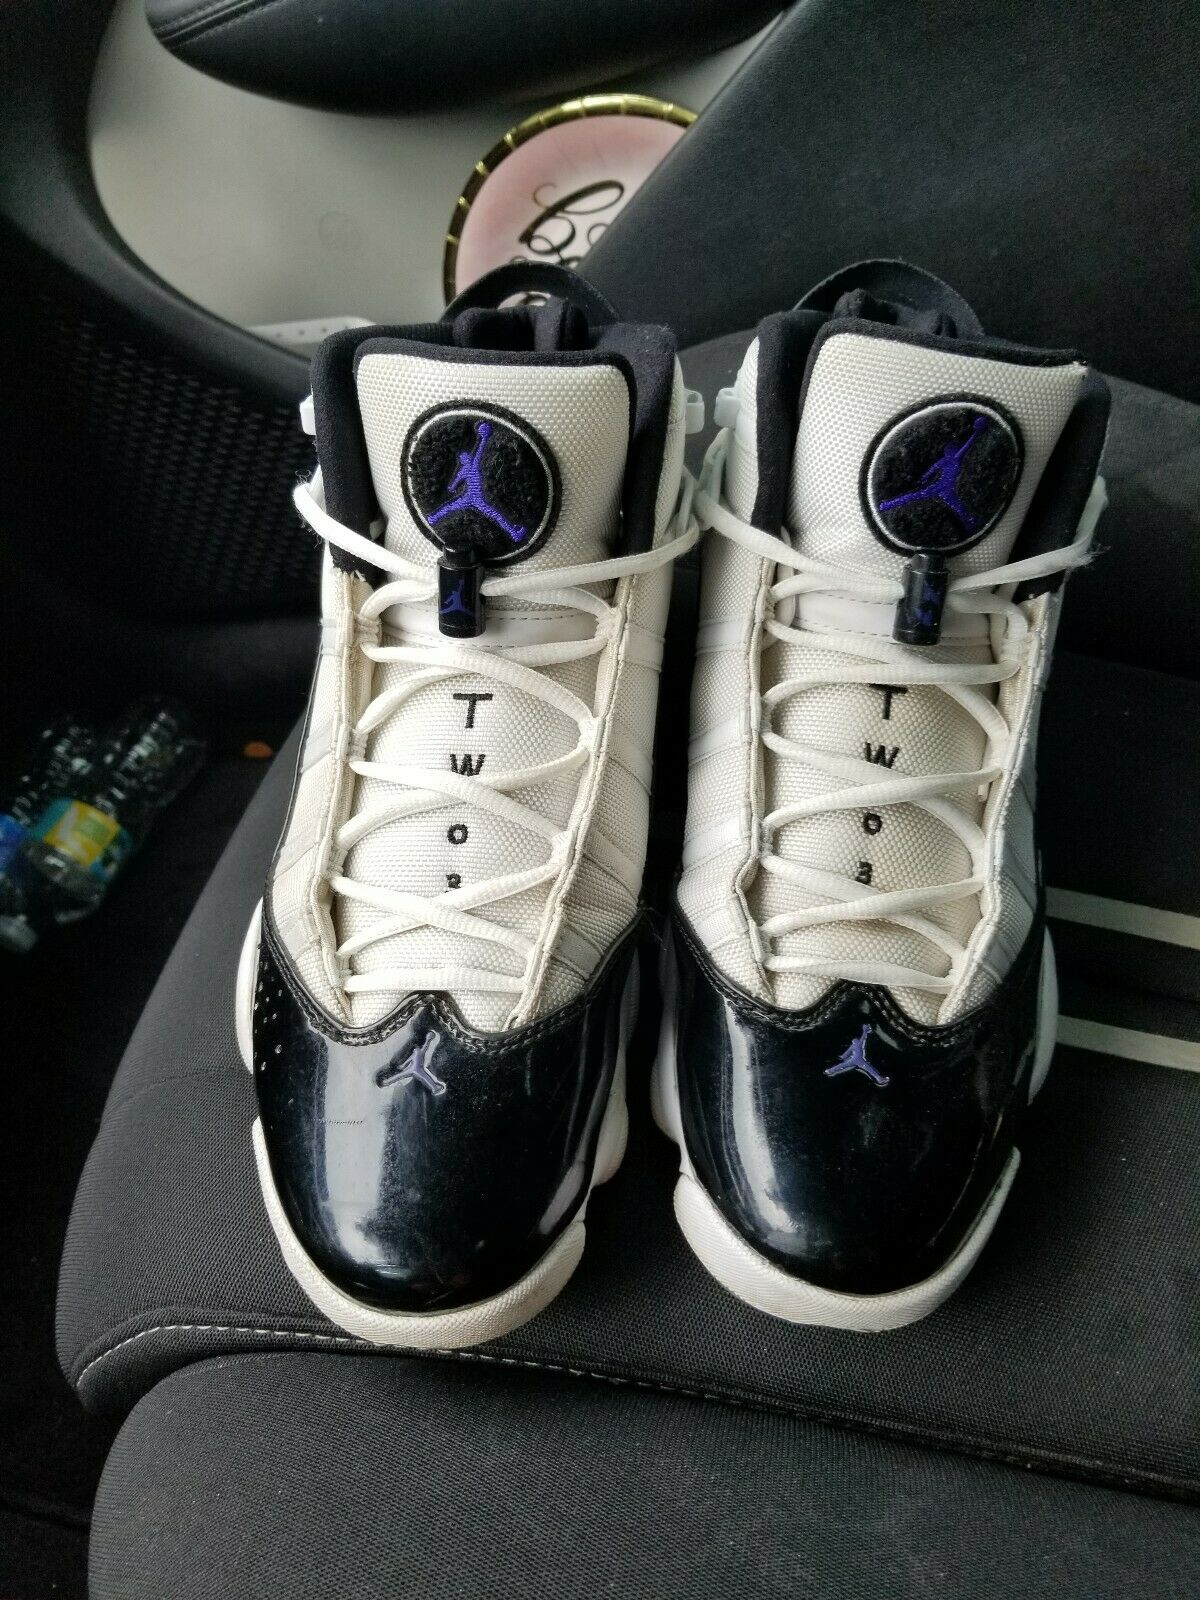 Jordans Two 3 Size 10.5 these things will brand new.